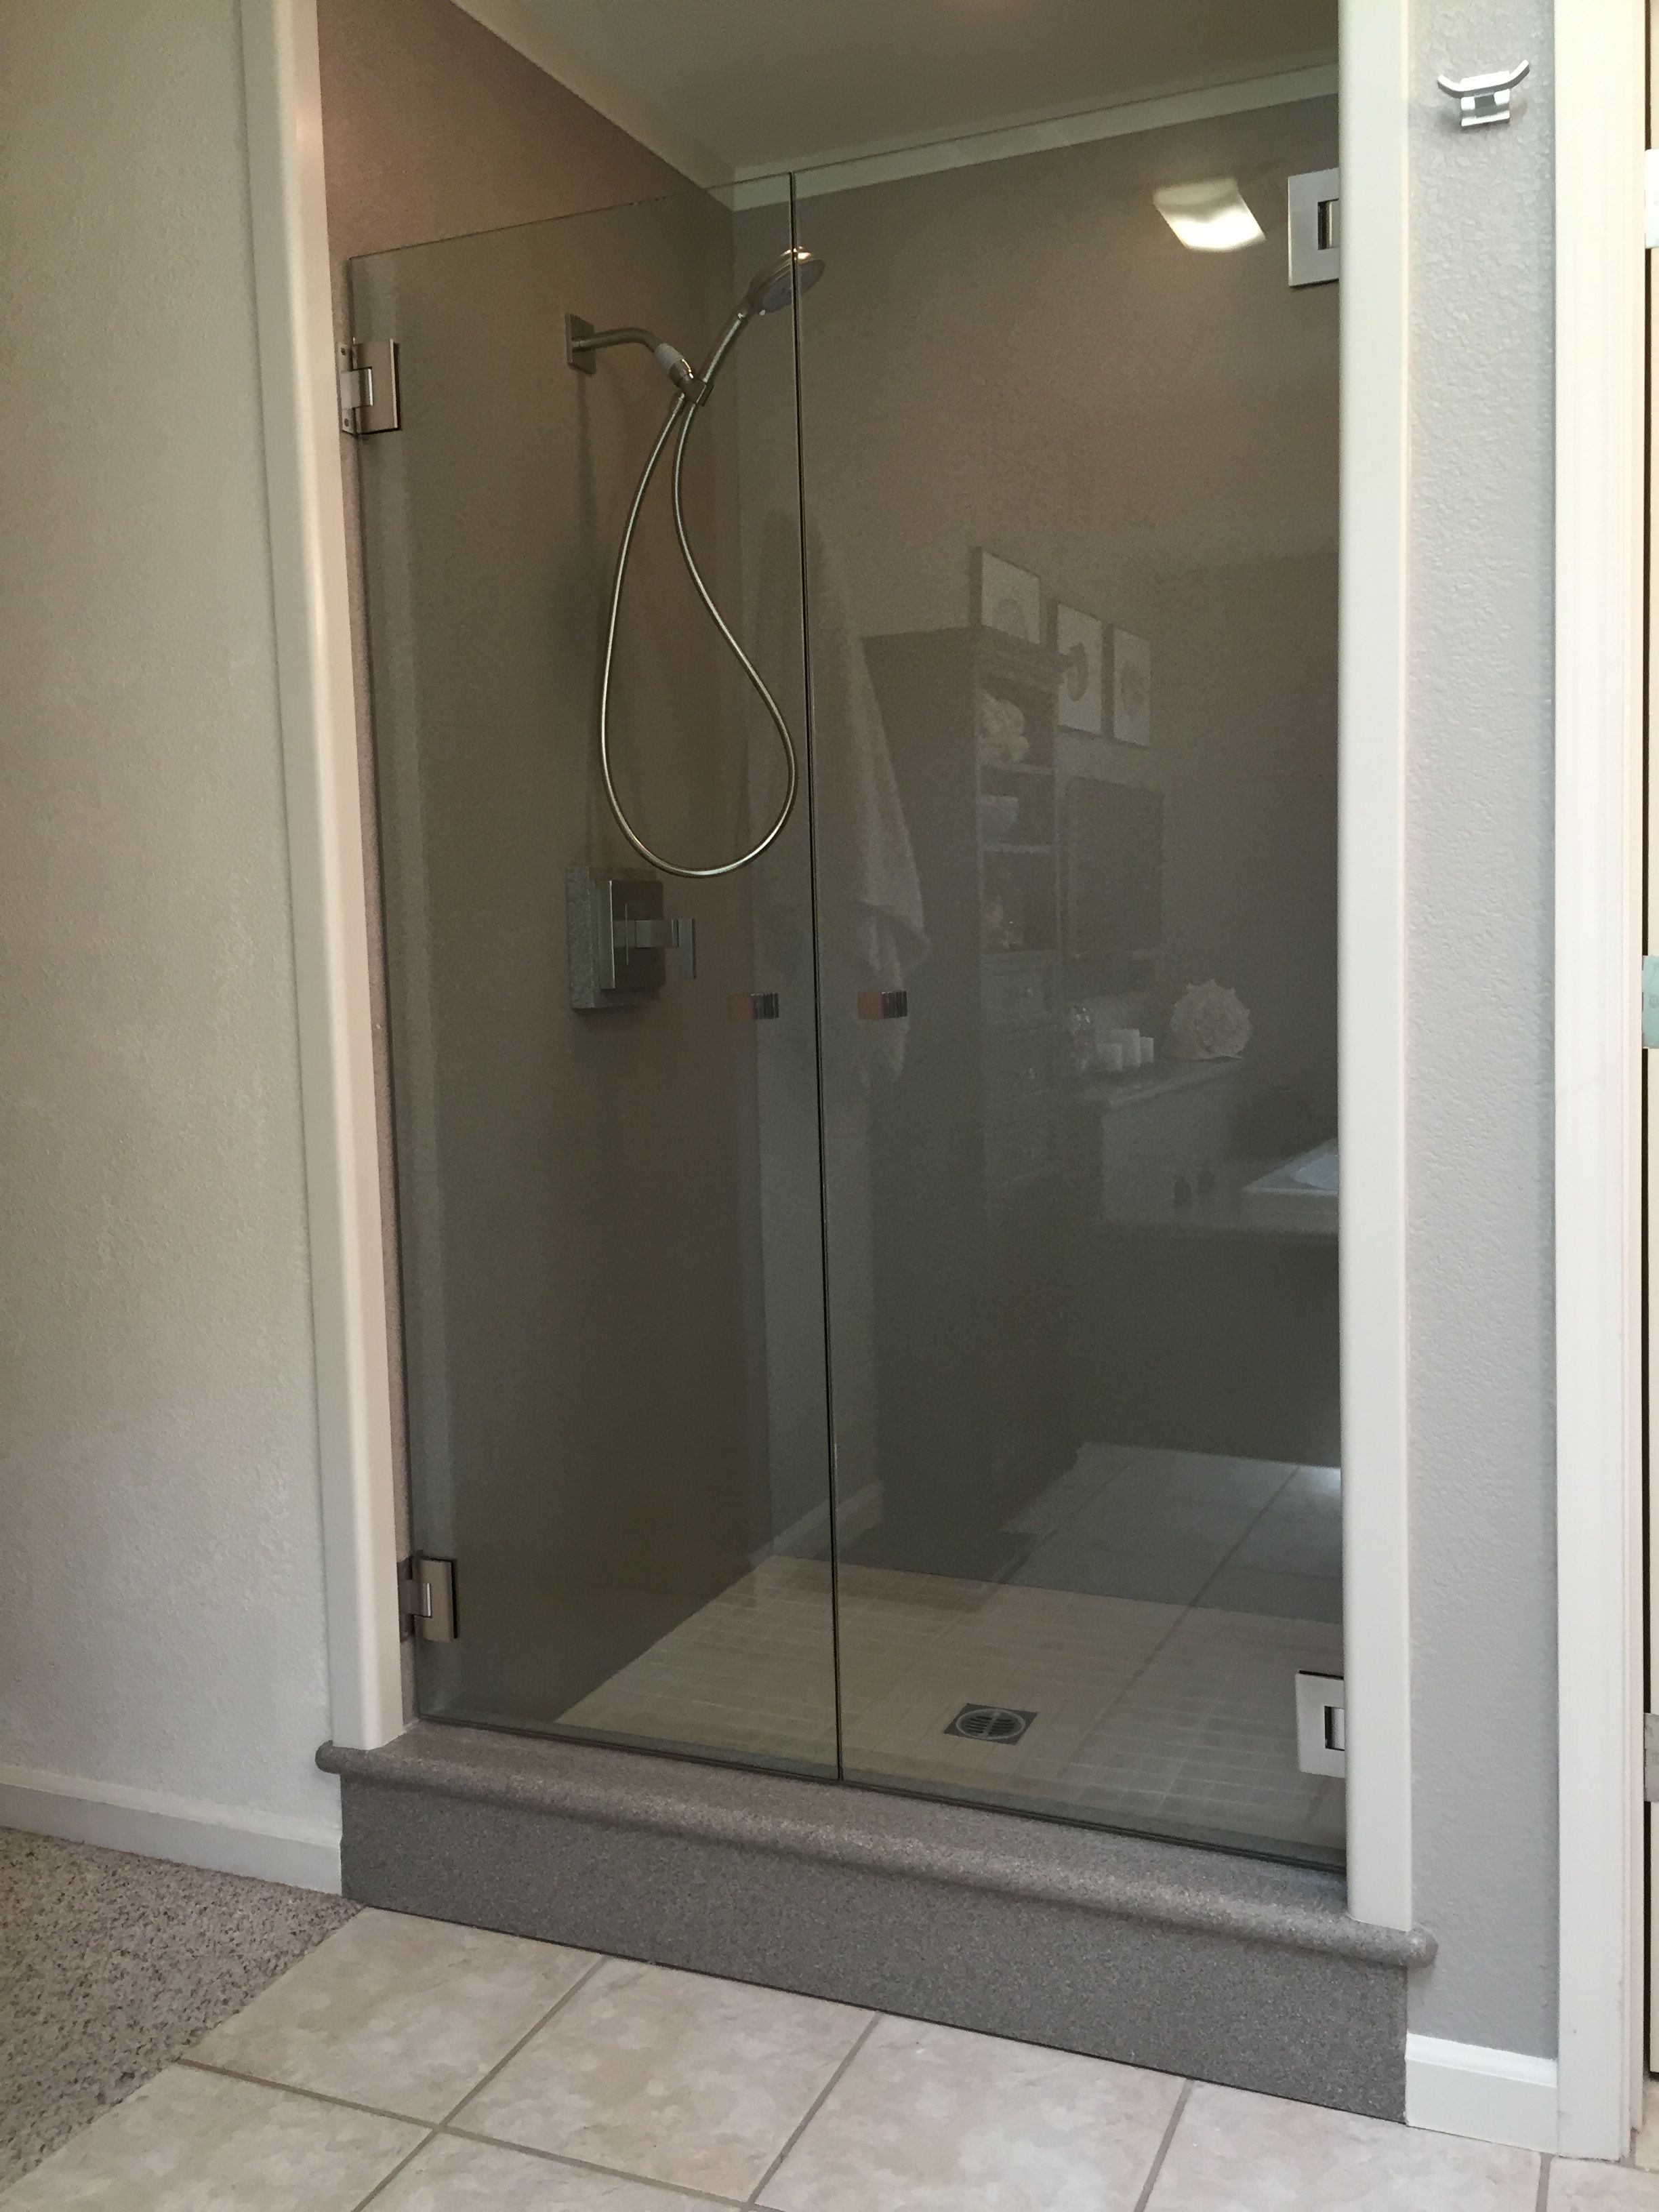 Saloon Style Shower Doors 3 8 Clear Gl With Brushed Nickel Hardware